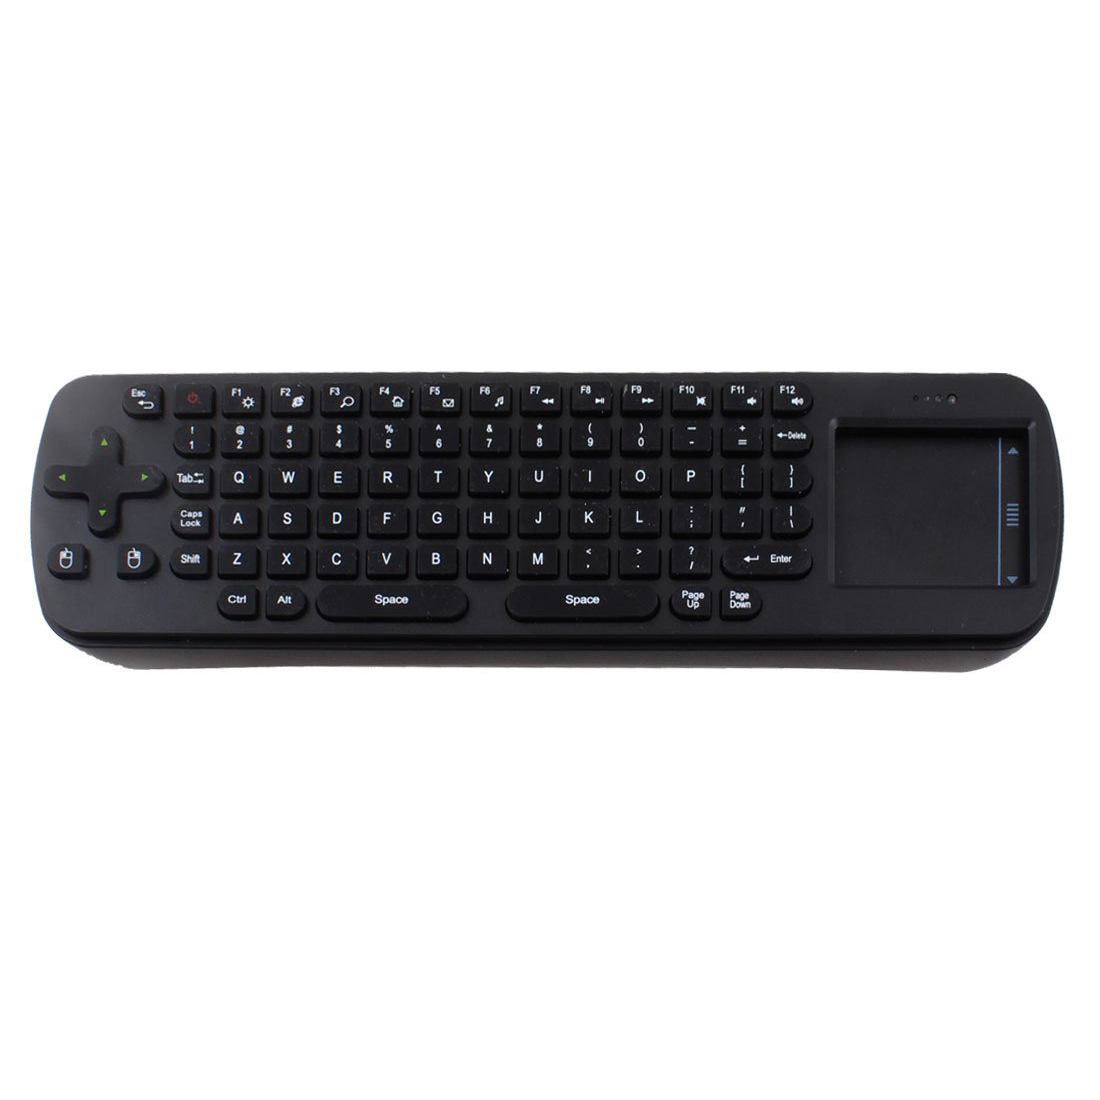 2015 Highly CommendMeasy RC 12 Multi Air Mouse 2.4G USB Wireless Keyboard Remote Android TV PC Media Player(China (Mainland))